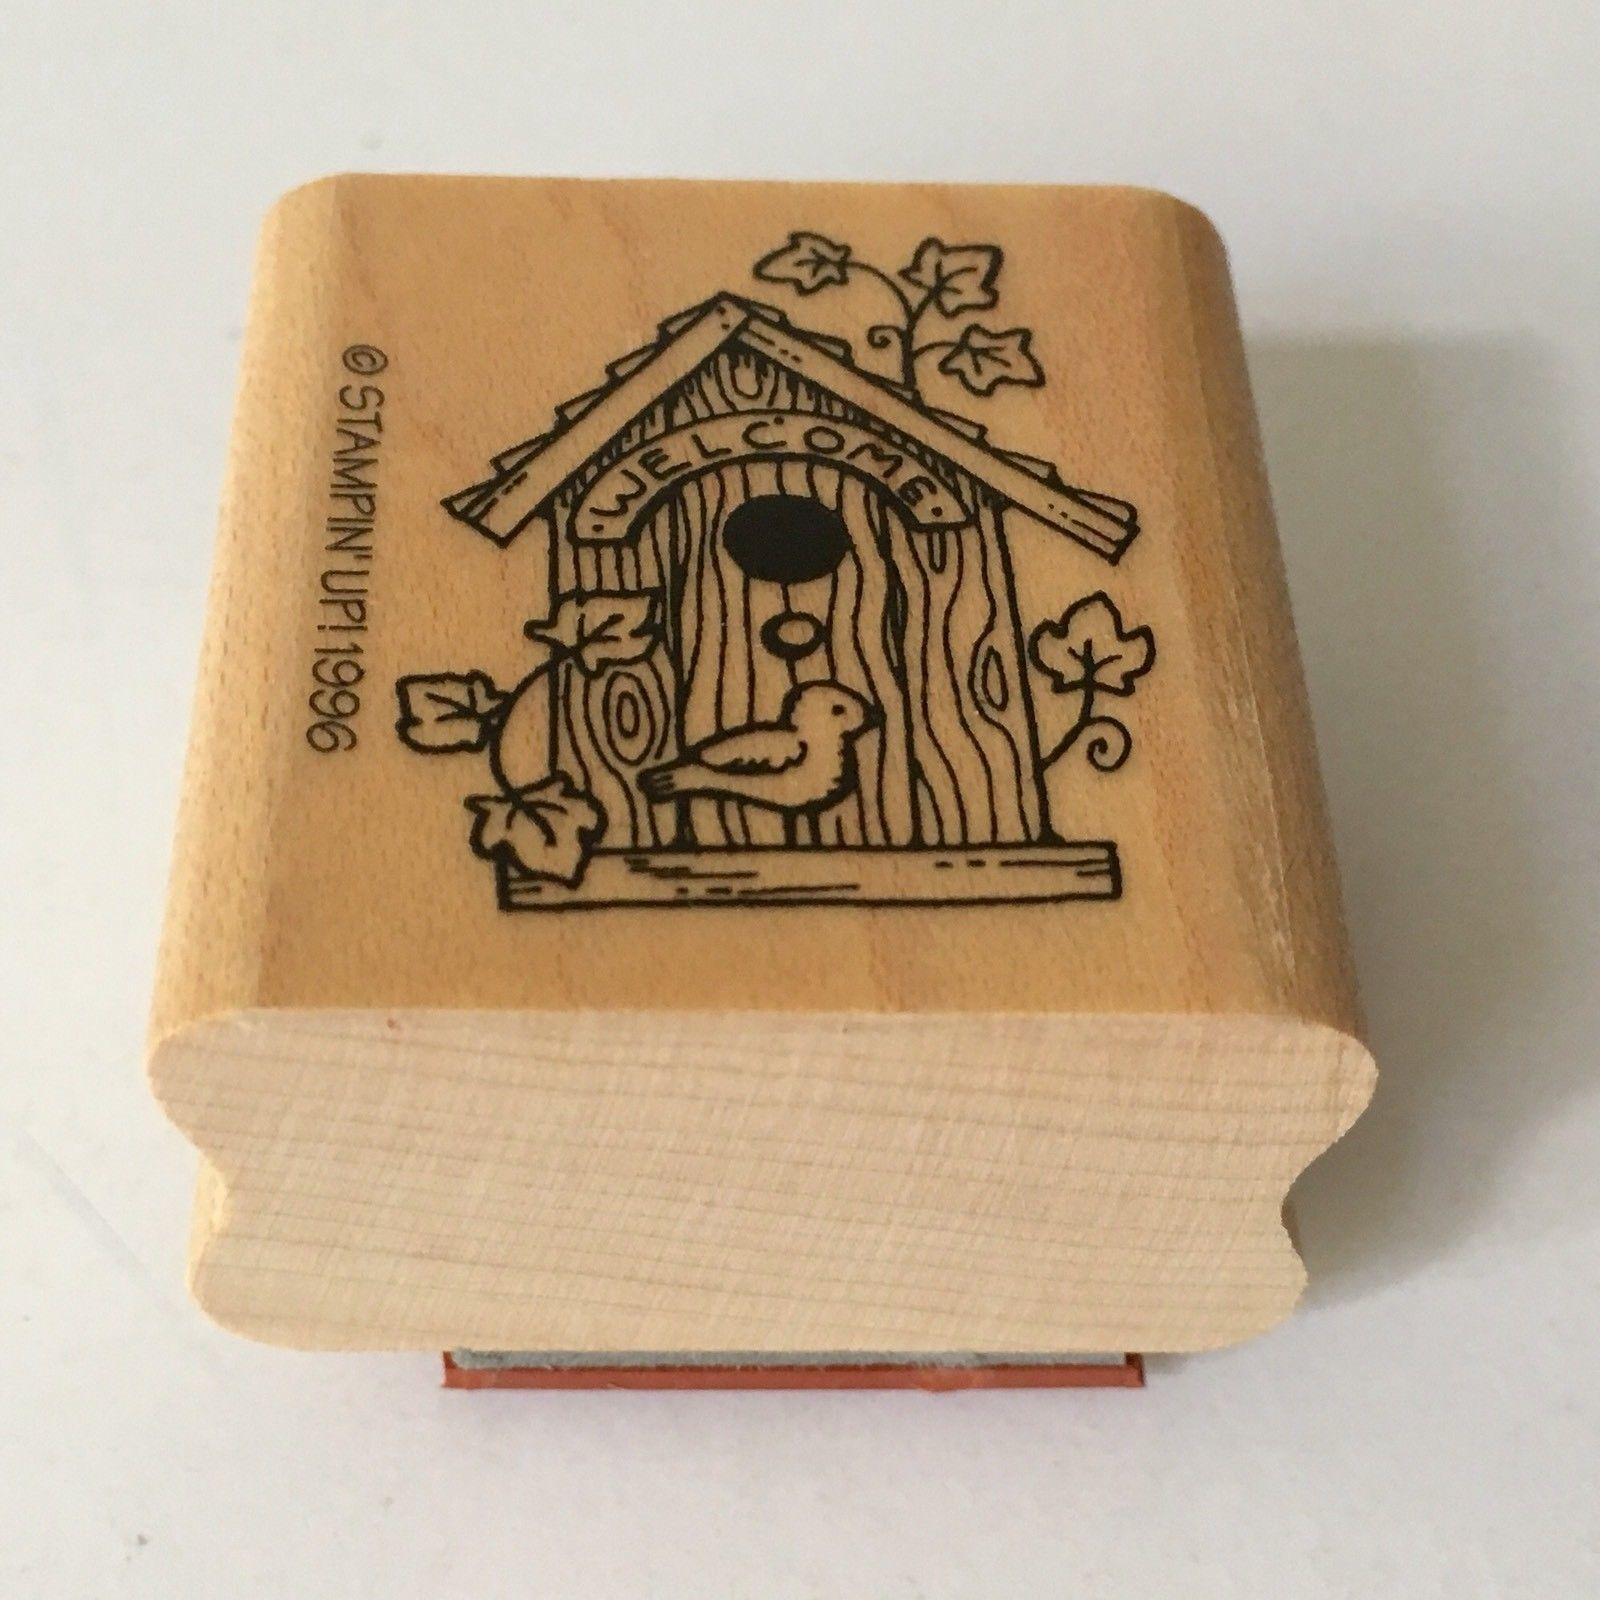 Birdhouse Welcome Home Rubber Stamp Stampin Up Mini Bird Wood Mounted Craft 1996